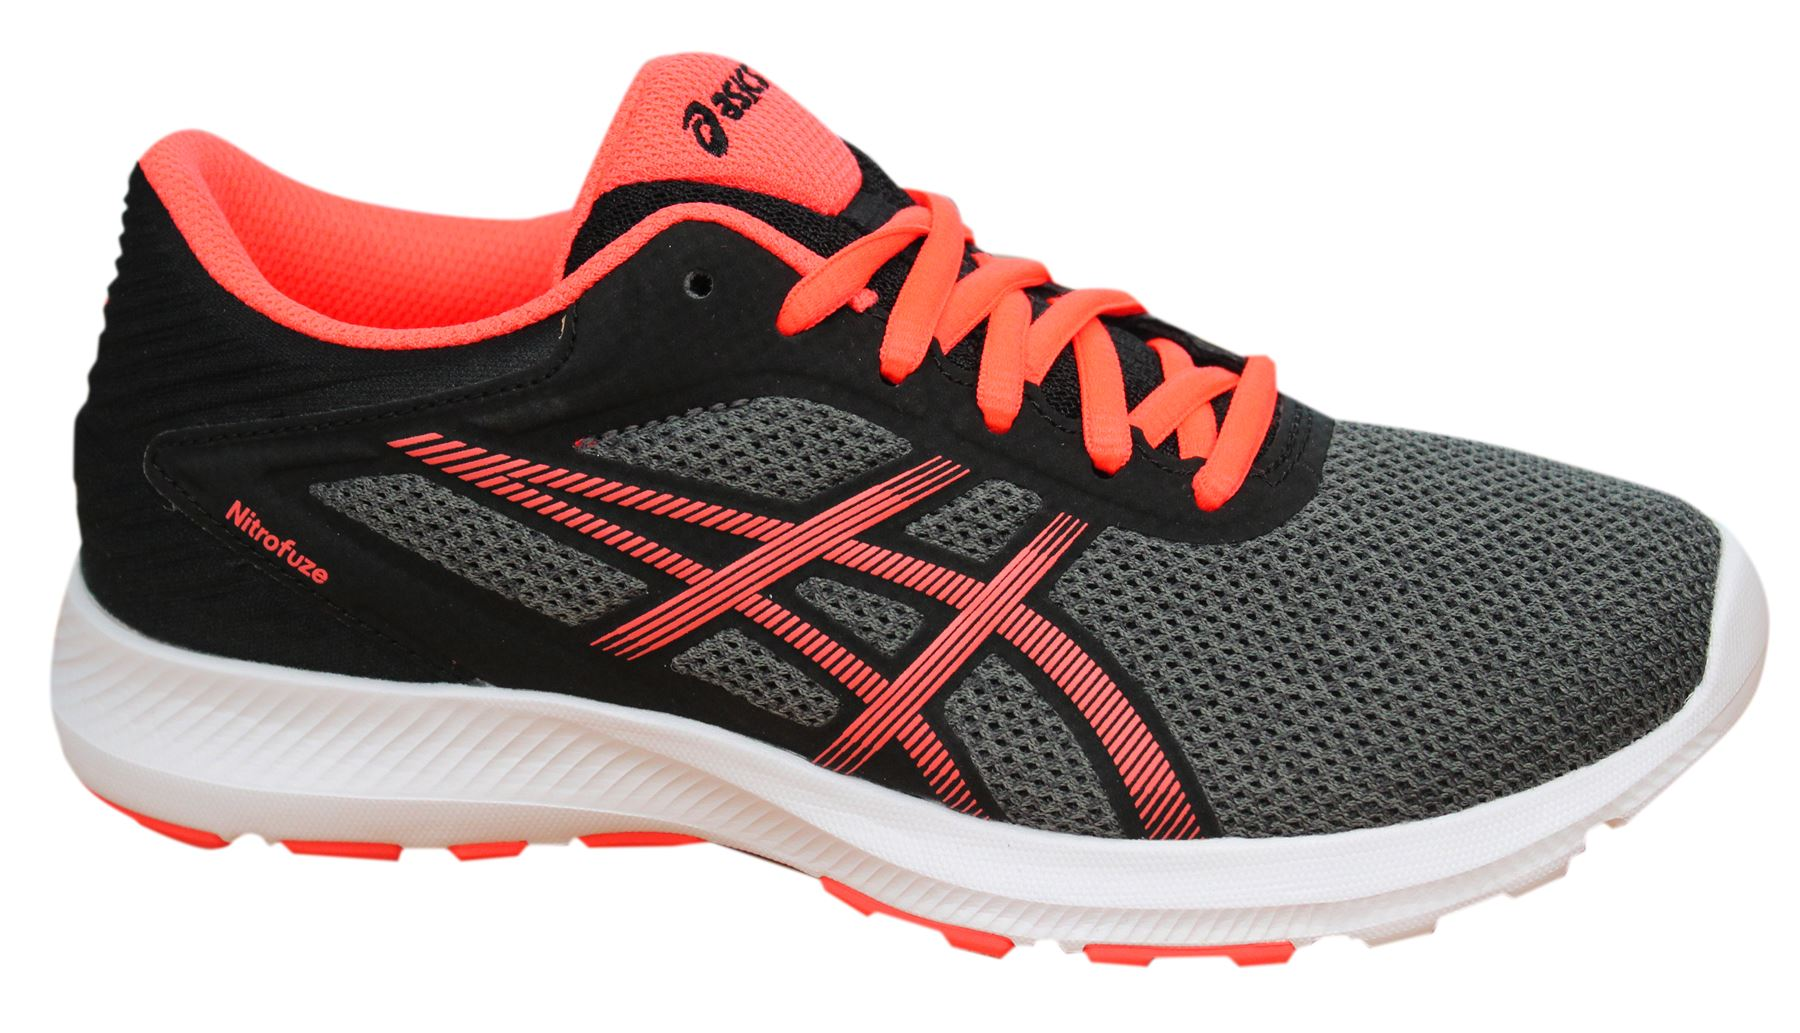 Details about Asics Nitrofuze Grey Black Lace Up Synthetic Womens Trainers T6H8N 9706 B11B